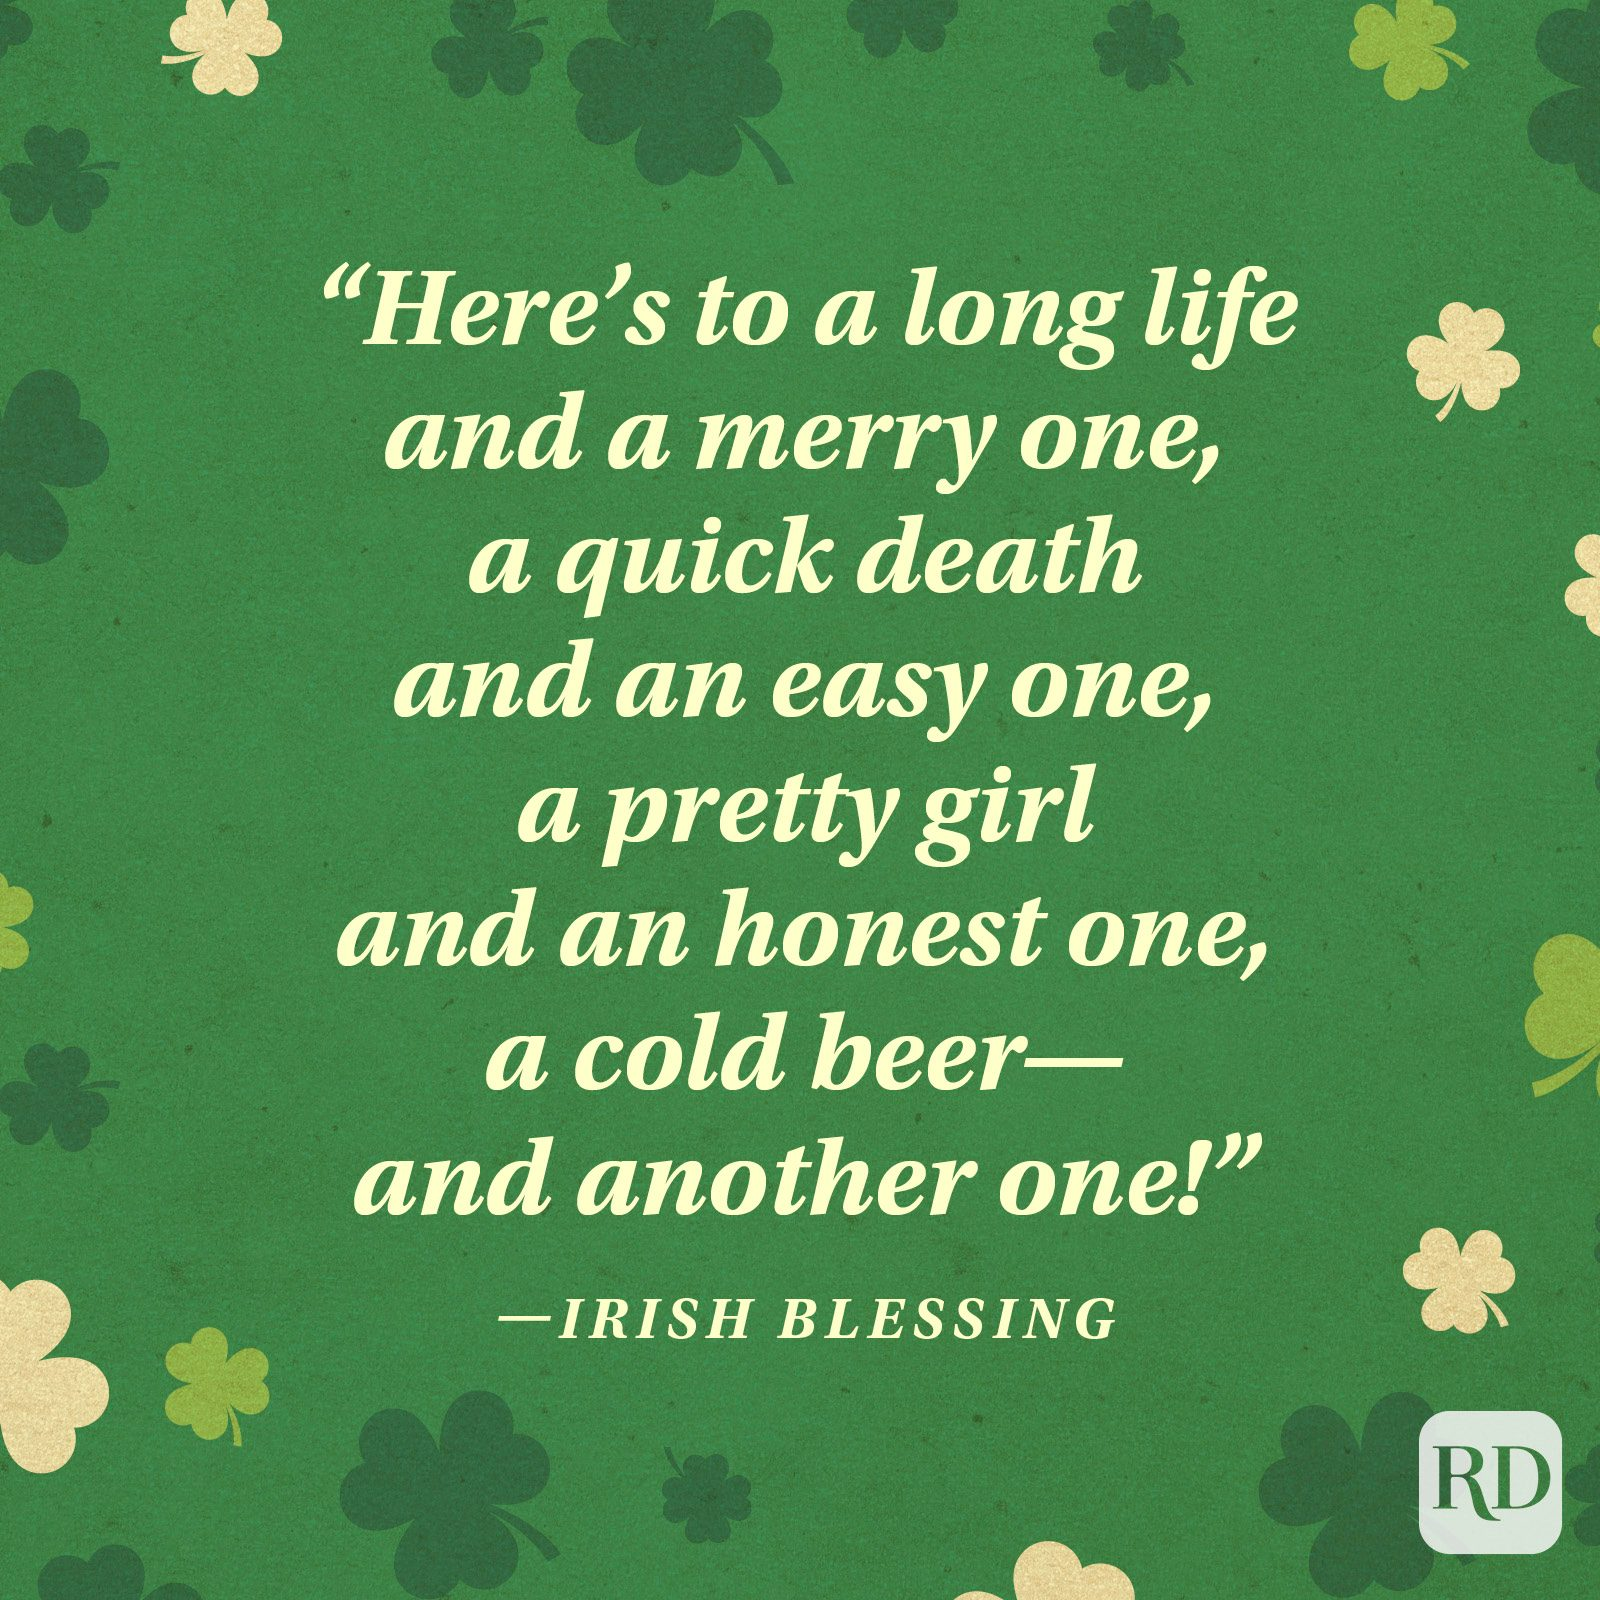 """Here's to a long life and a merry one, a quick death and an easy one, a pretty girl and an honest one, a cold beer—and another one!"" —Irish blessing"